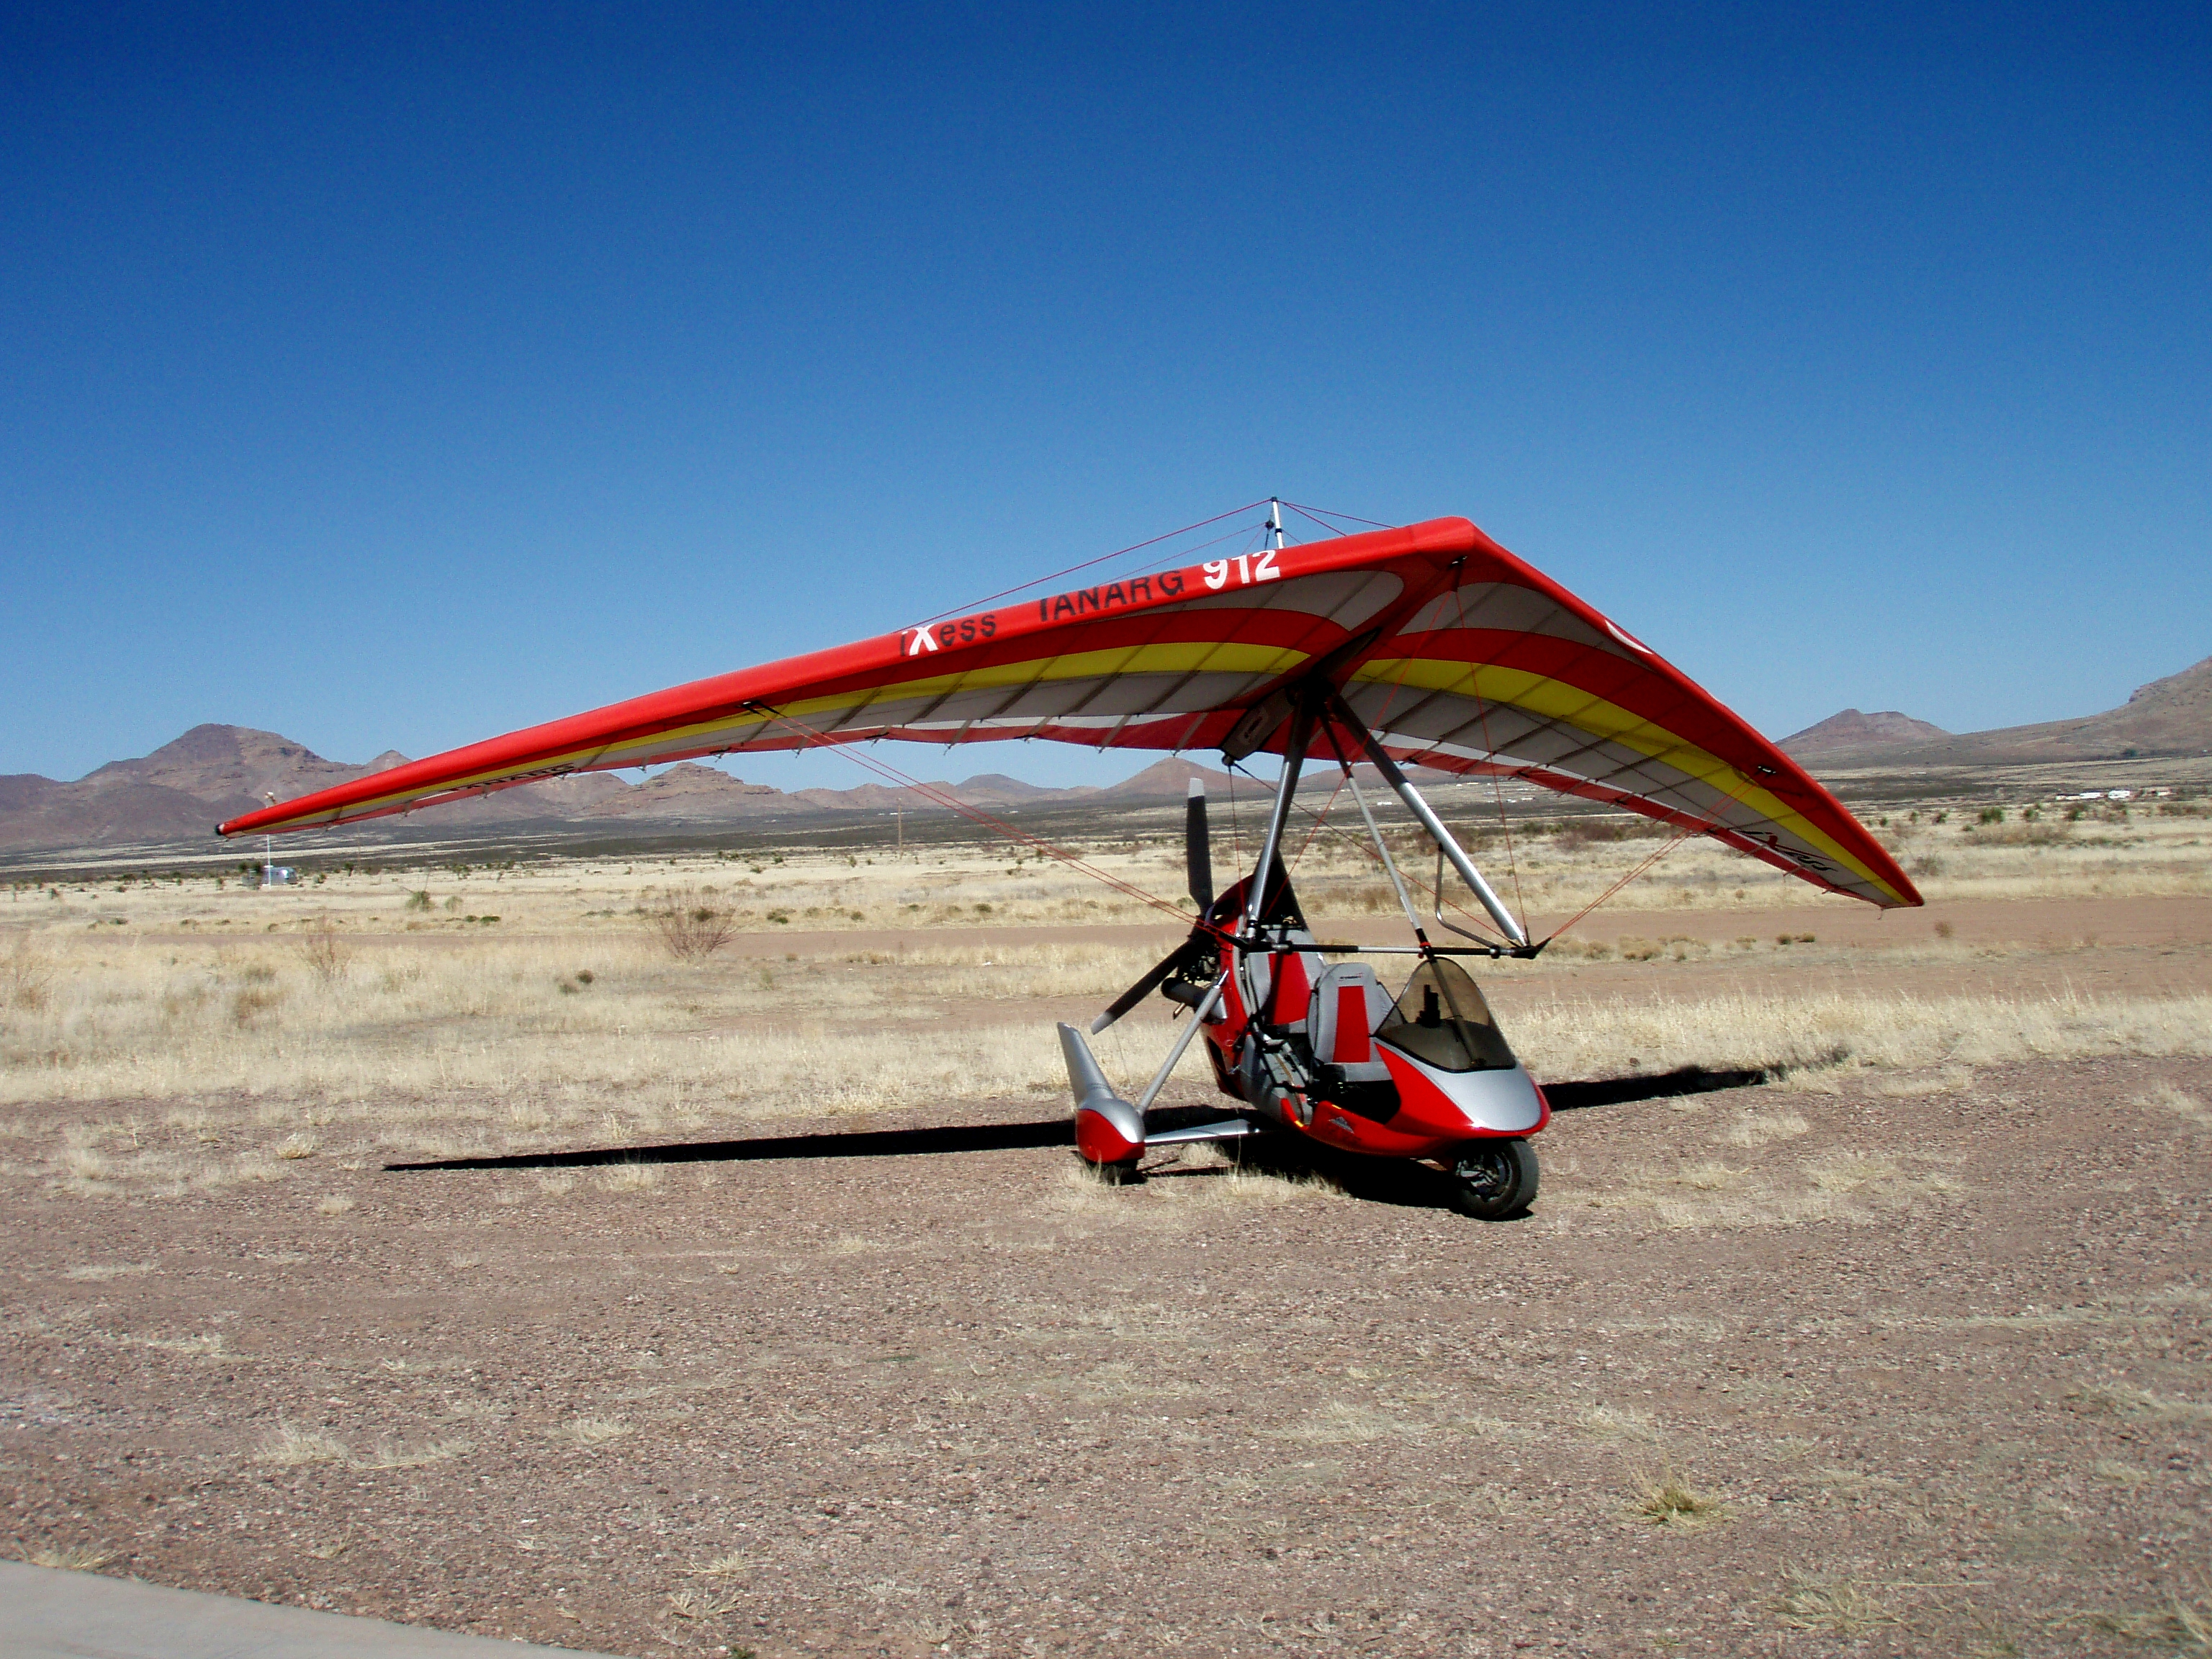 ultralight trike North wing manufactures high quality, weight shift control light sport aircraft, ultralight trikes, trike wings, and hang gliders that are fun to fly built in the.